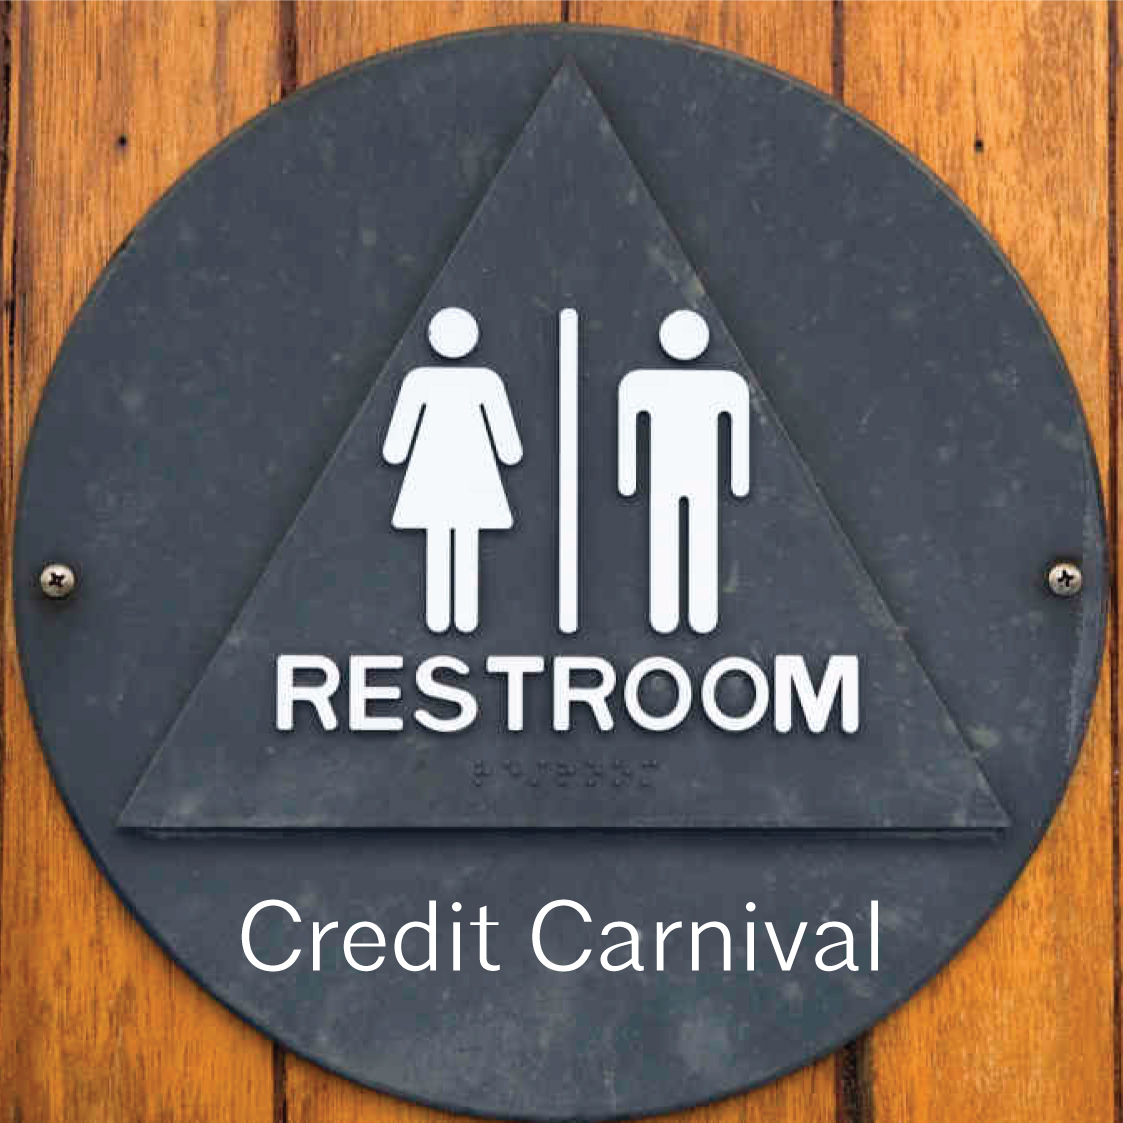 Credit Carnival: Restrooms